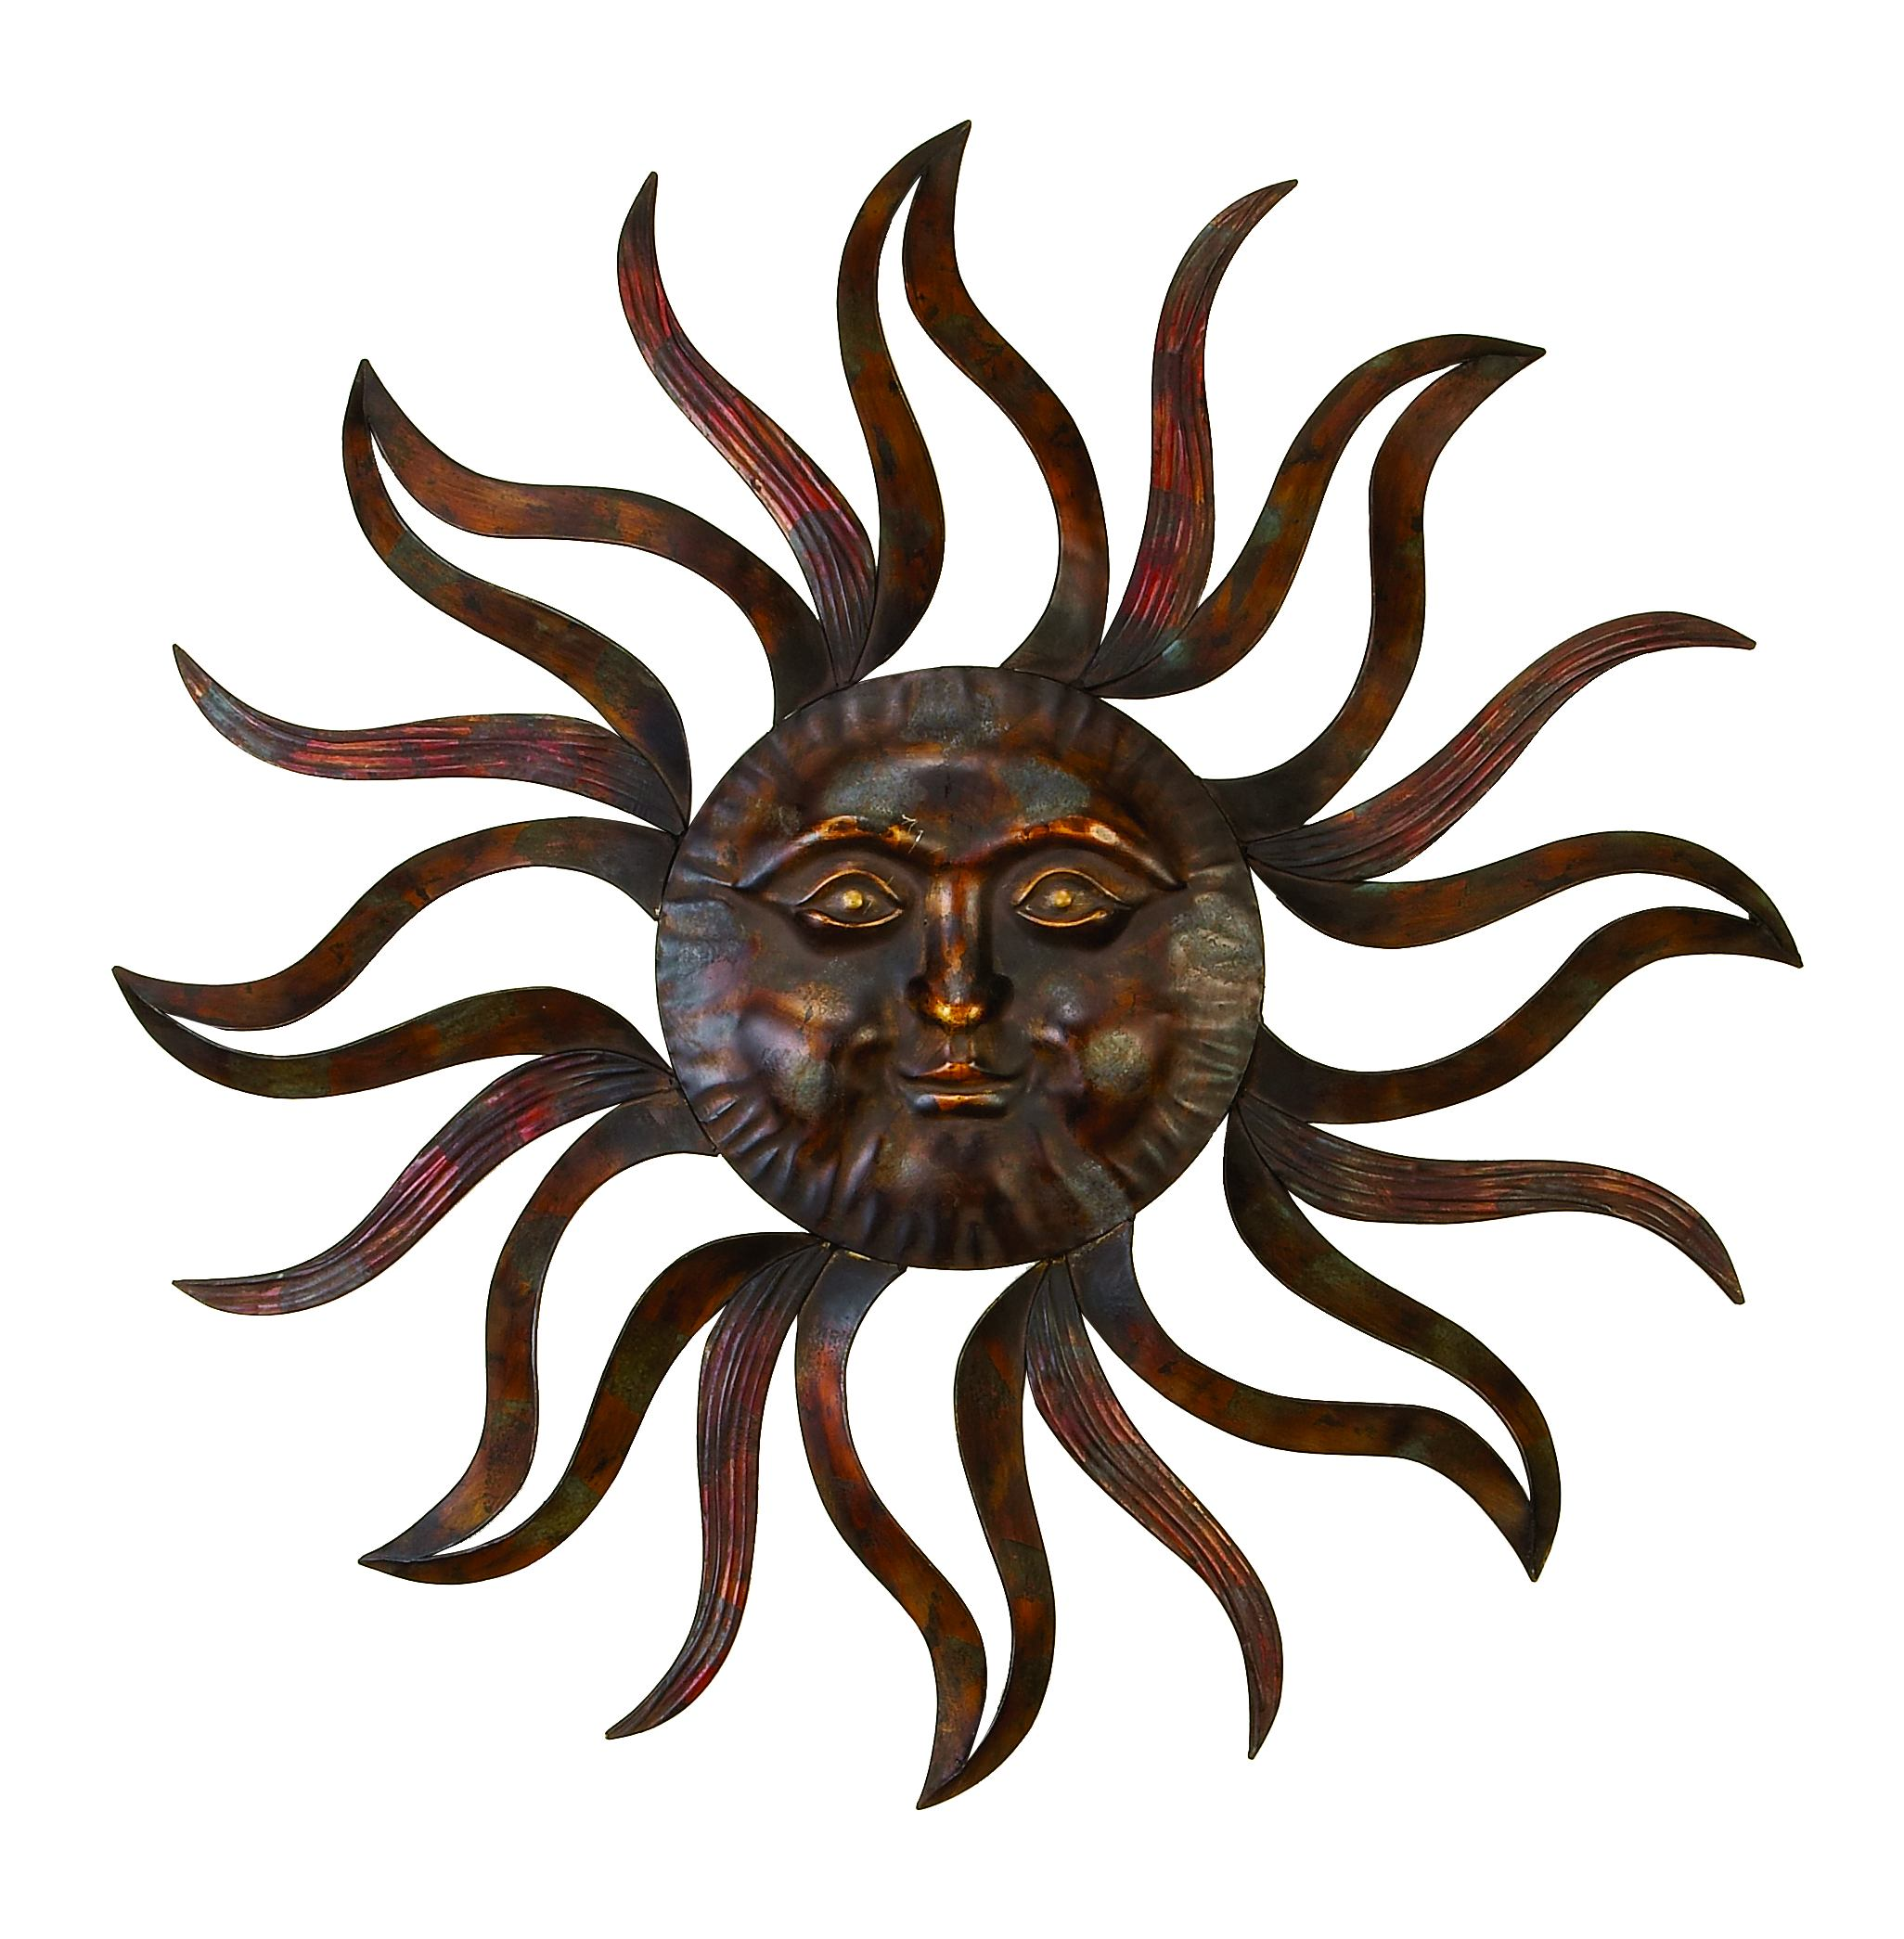 Decmode Eclectic 35 Inch Metal Celestial Sun Wall Decor by DecMode